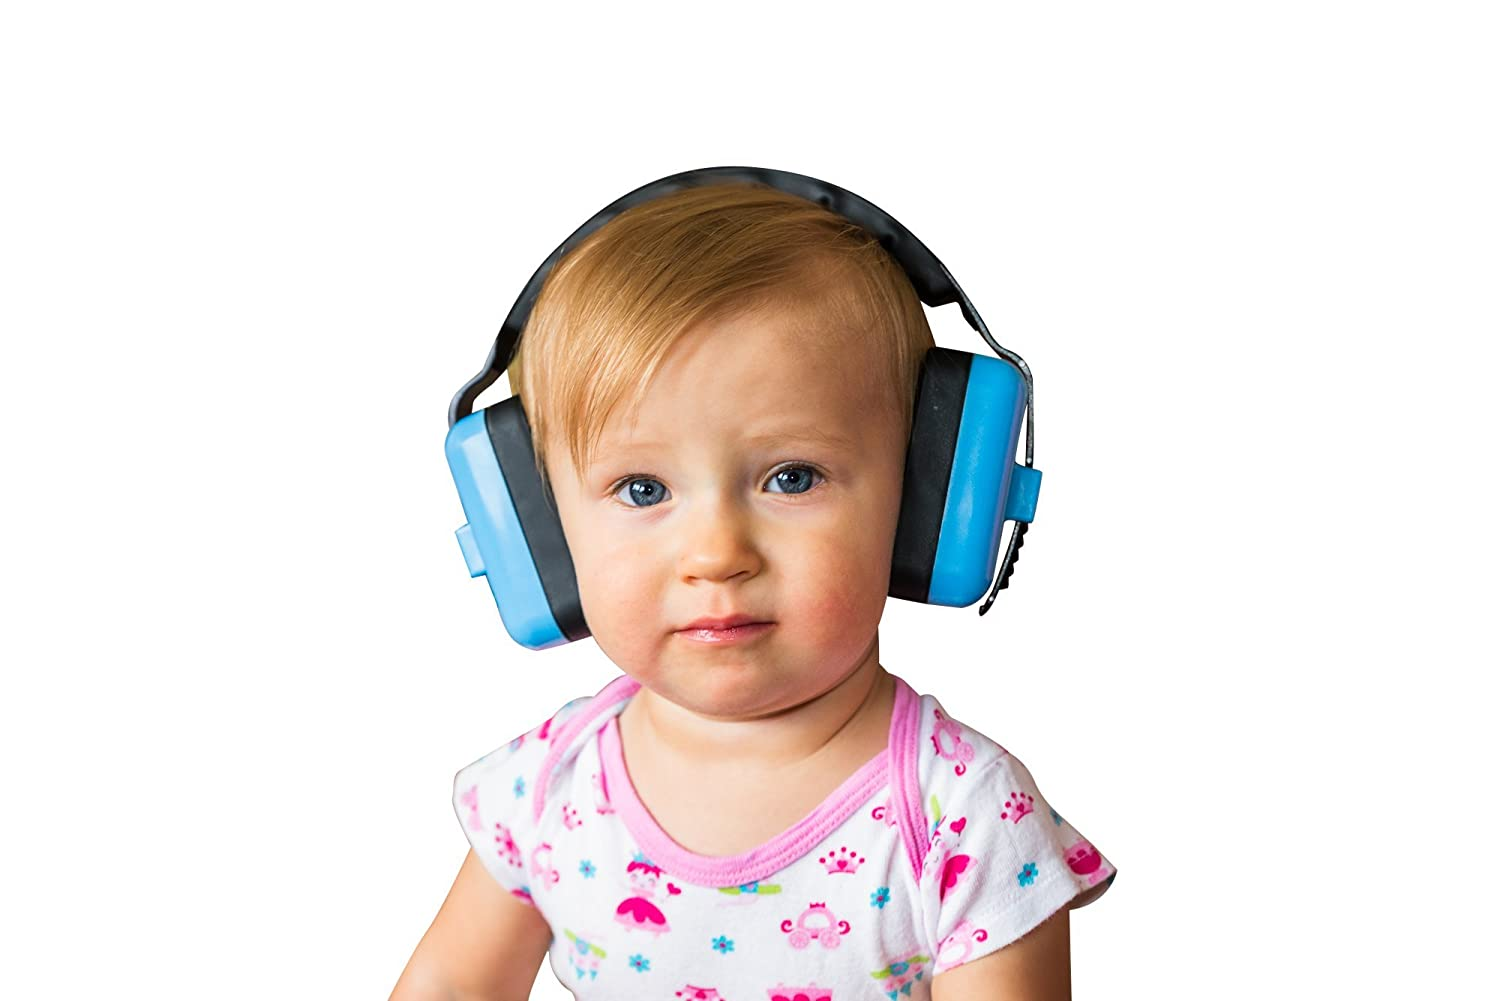 Little Llama Baby 6 months to 4 years old Hearing Protection Ear Muffs - Super Comfortable Noise Reduction and Ear Protection for your Infant Toddler and Child - Blue EarMuff1